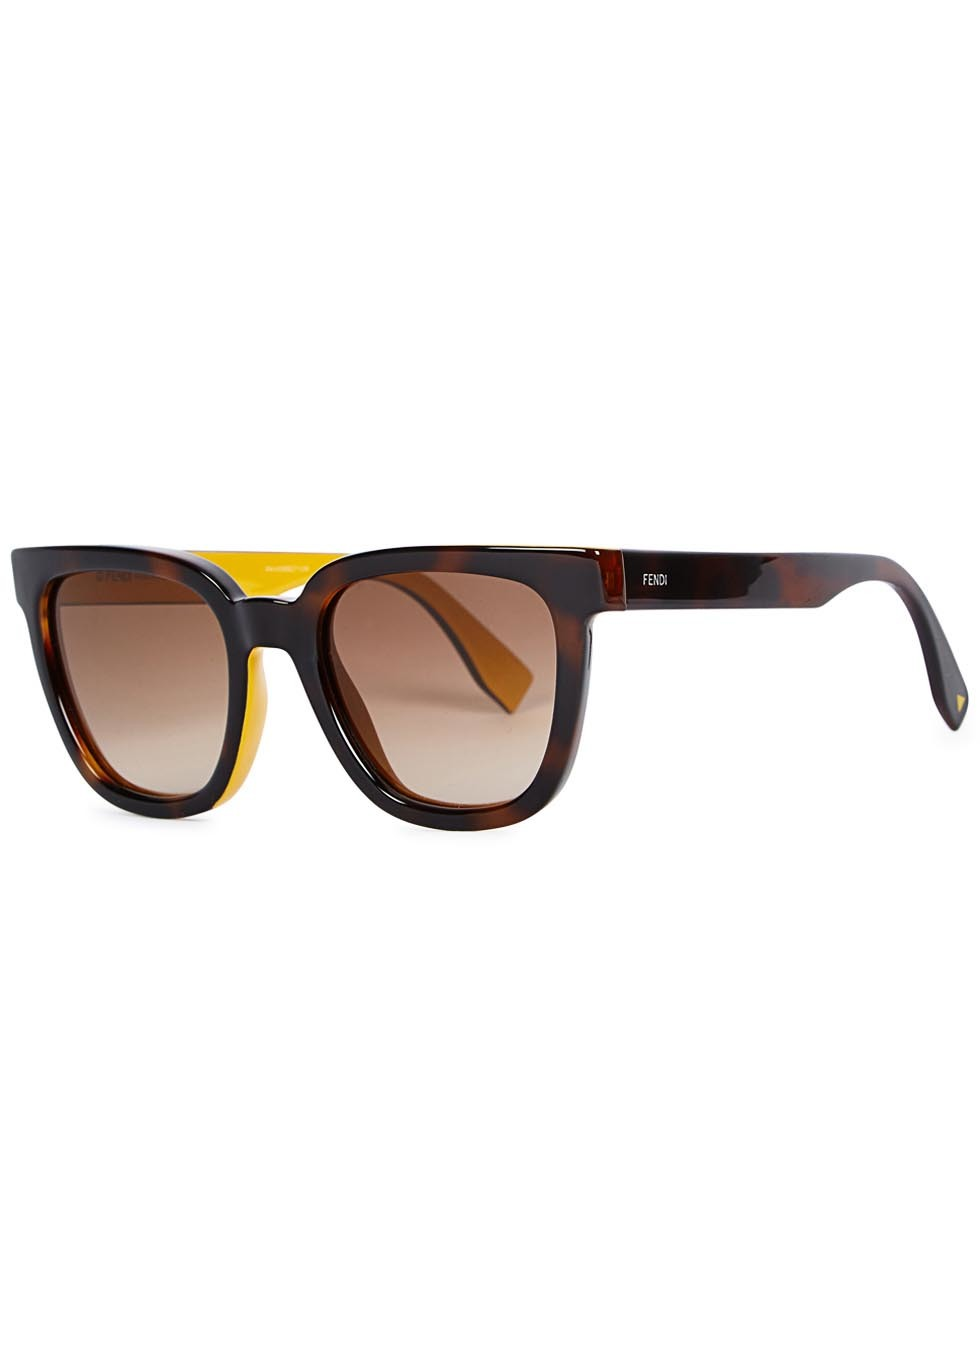 Tortoiseshell Wayfarer Style Sunglasses - predominant colour: black; occasions: casual, holiday; style: d frame; size: standard; material: plastic/rubber; pattern: plain; finish: plain; season: a/w 2015; wardrobe: basic